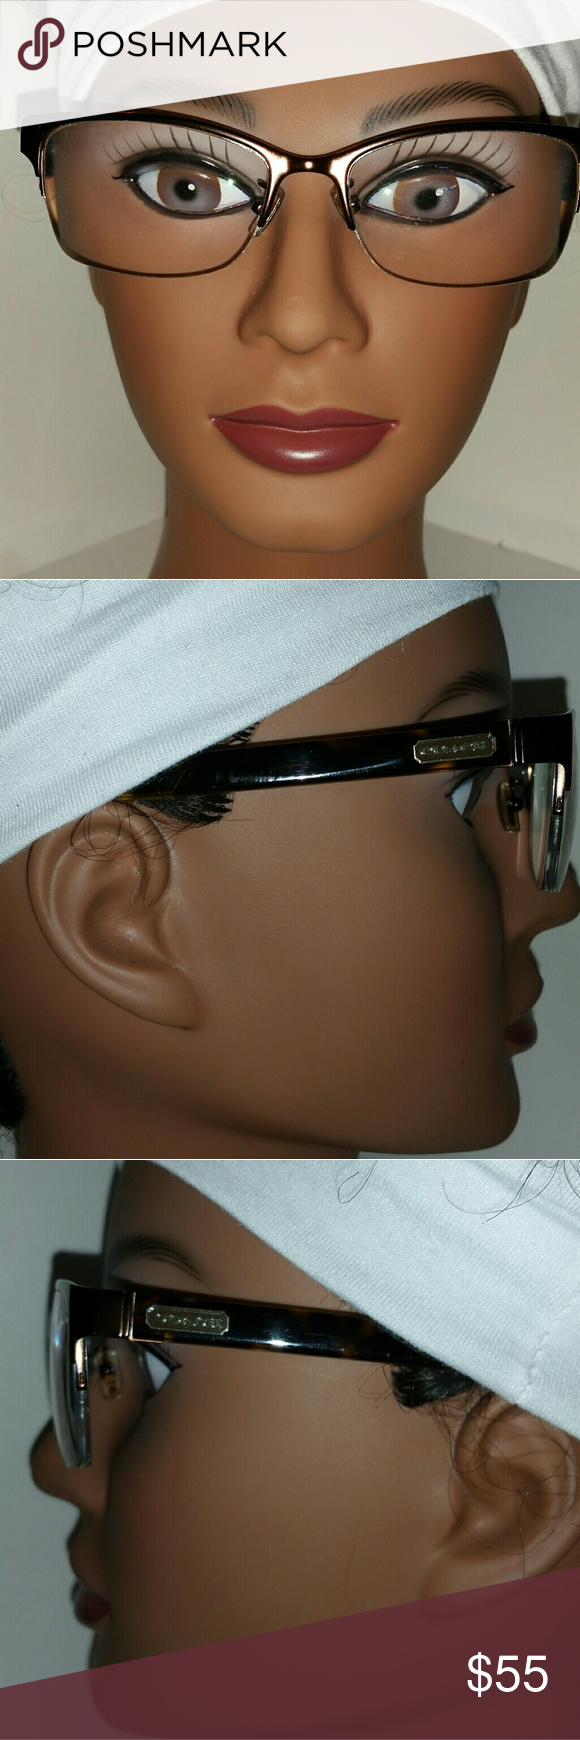 9c84050535e9 COACH MONTANA FRAMES ONLY Coach eyewear are a must-have accessory that can  be worn